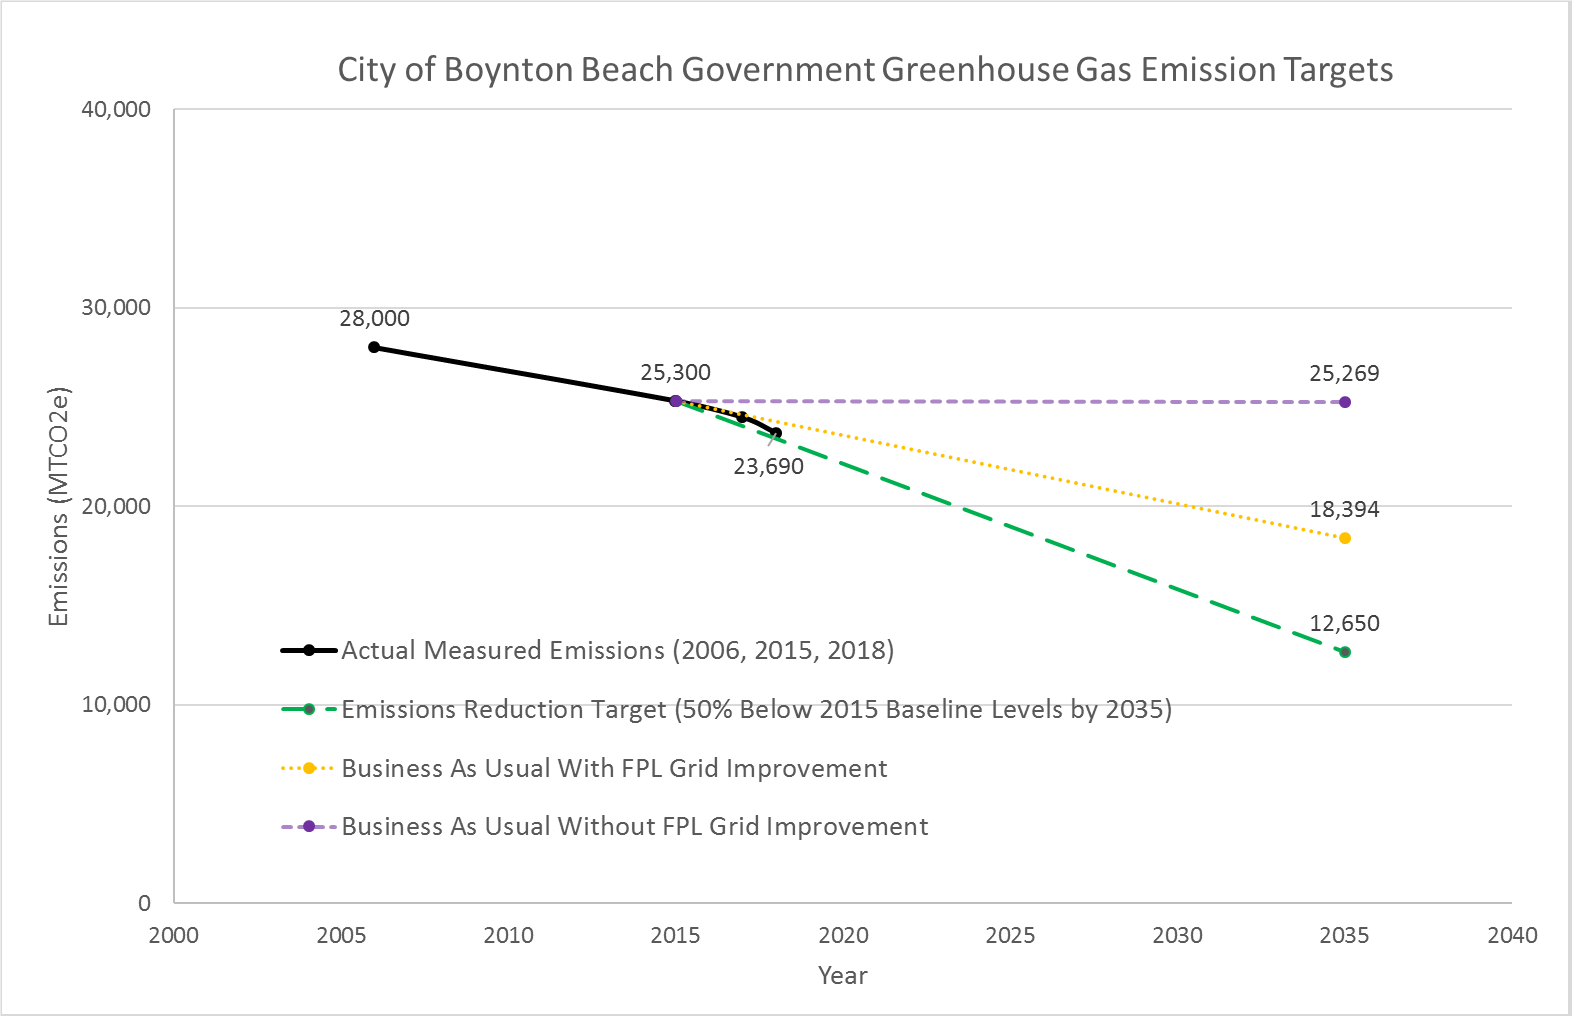 City of Boynton Beach government green house gas emissions targets